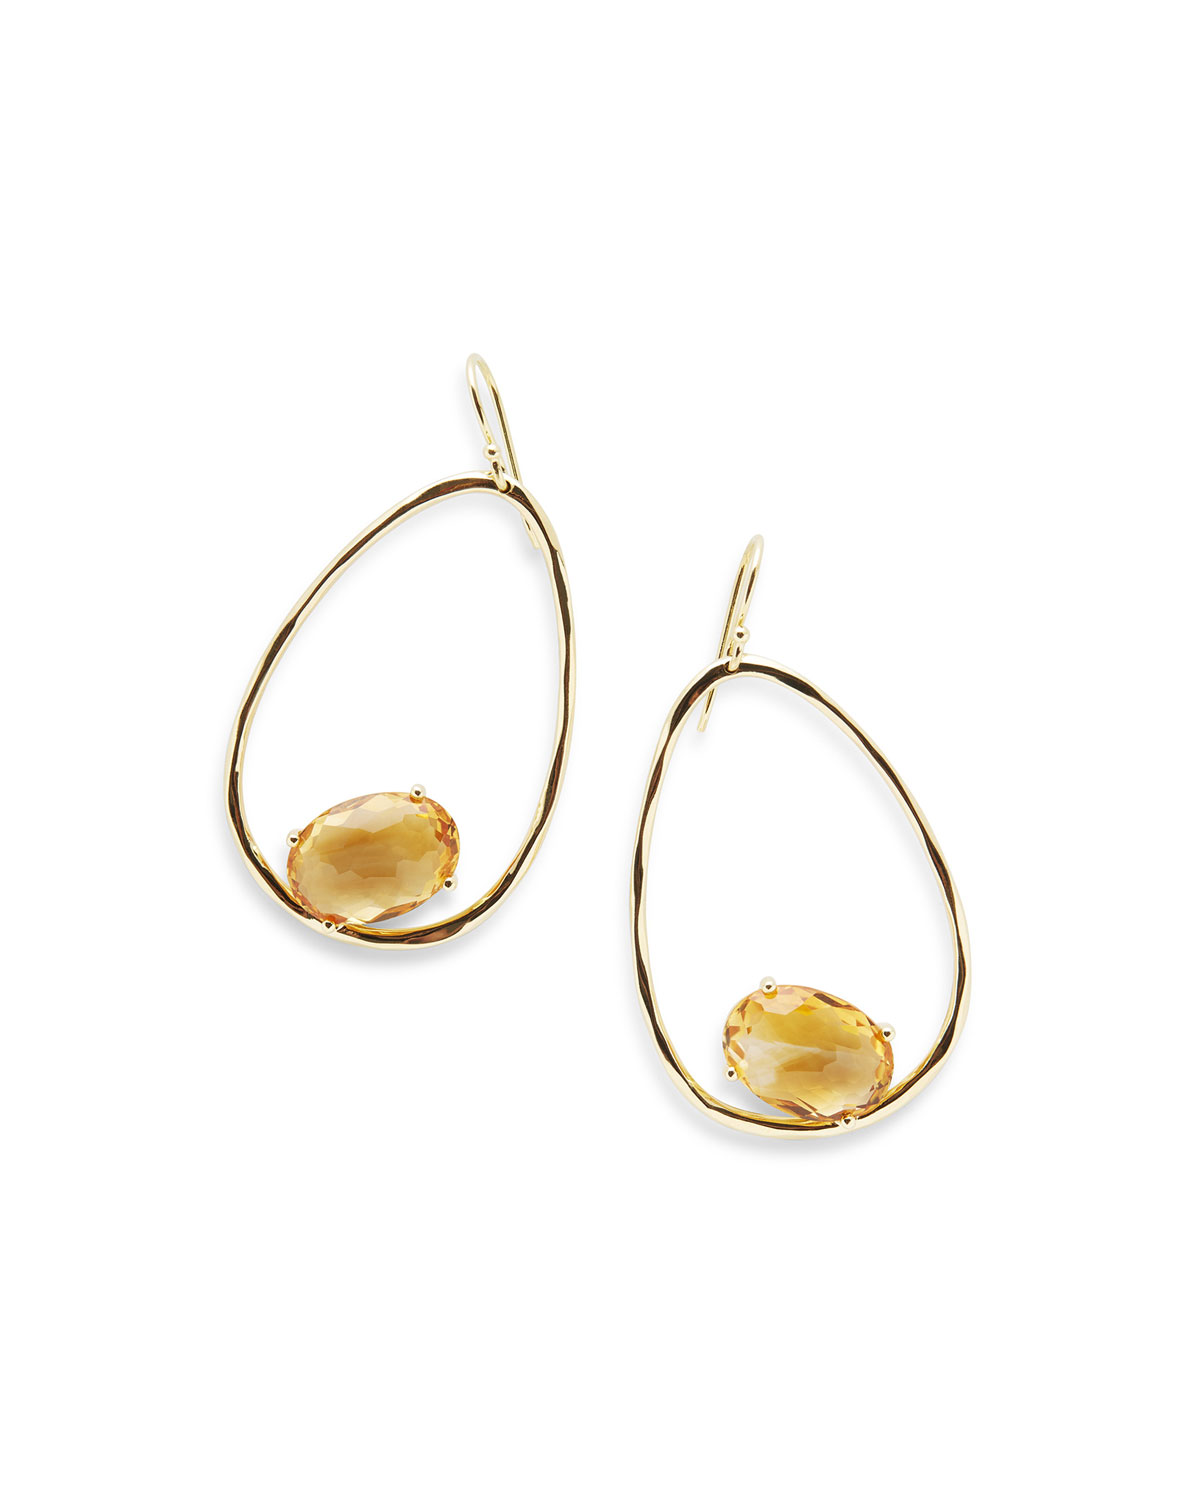 Ippolita 18K Rock Candy Tipped Oval Wire Earrings in Mother-of-Pearl 6BAYXZ